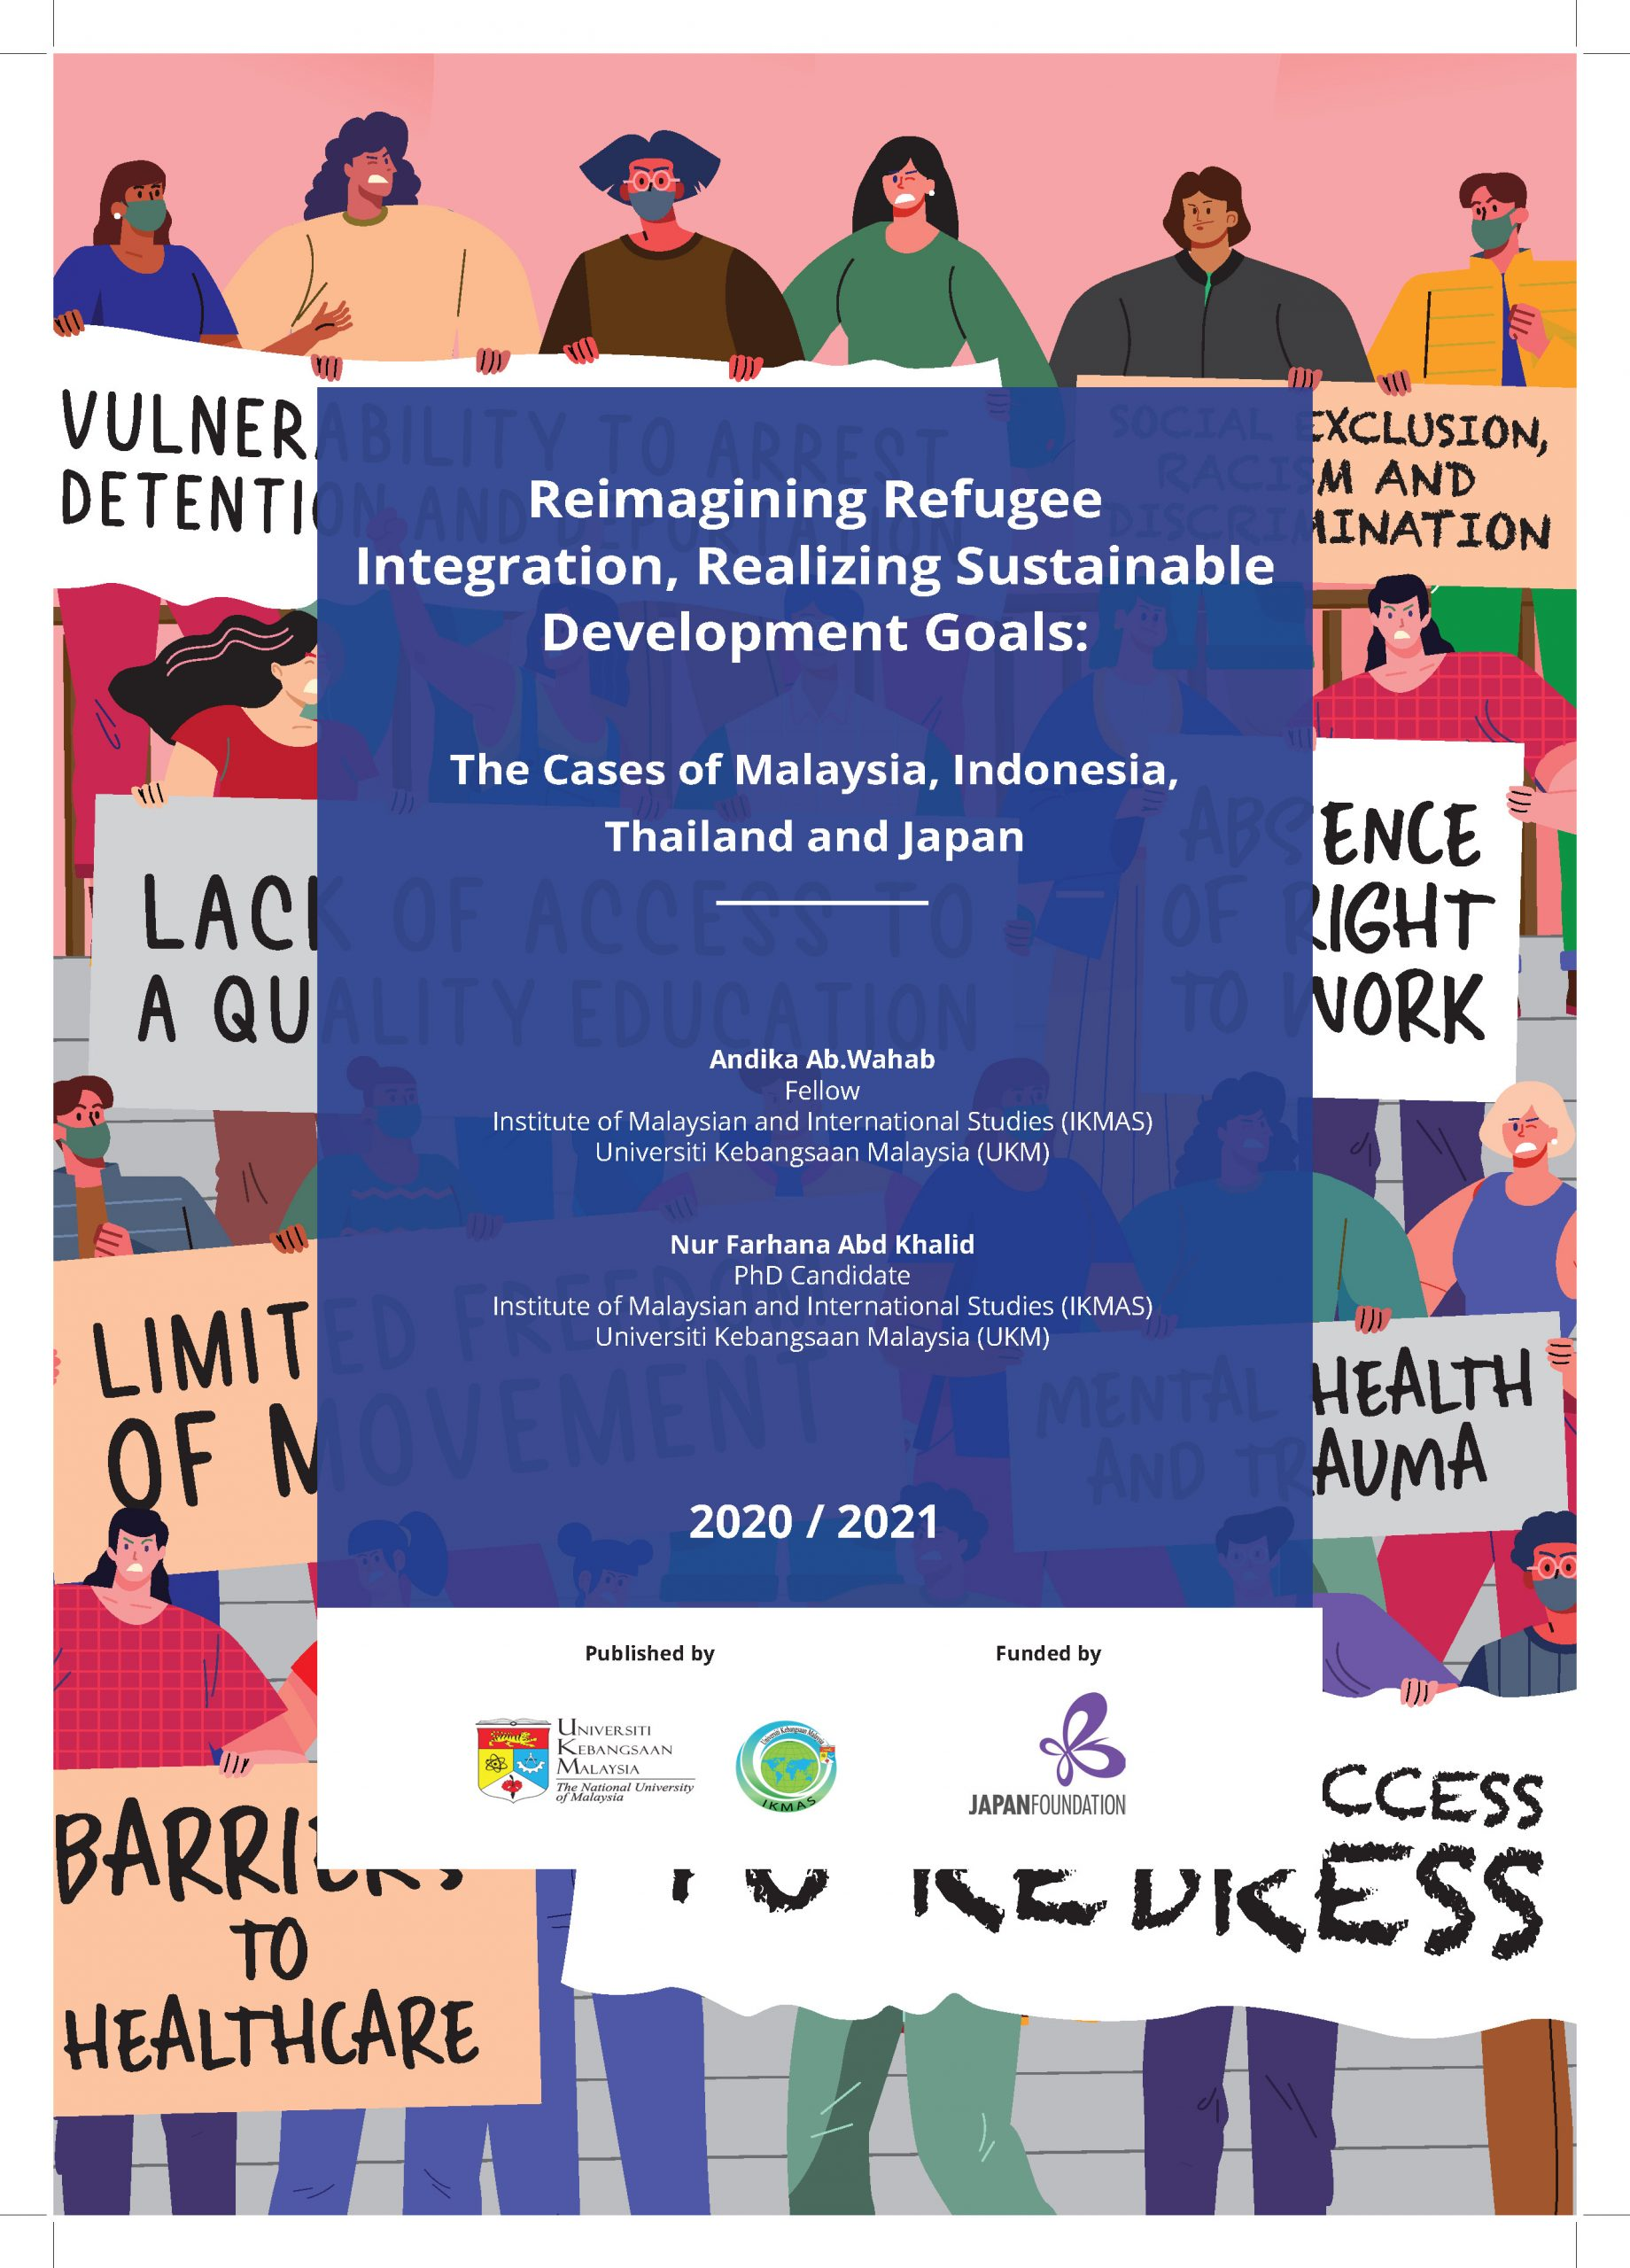 Reimagining Refugee Integration, Realizing Sustainable Development Goals: The Cases of Malaysia, Indonesia, Thailand and Japan